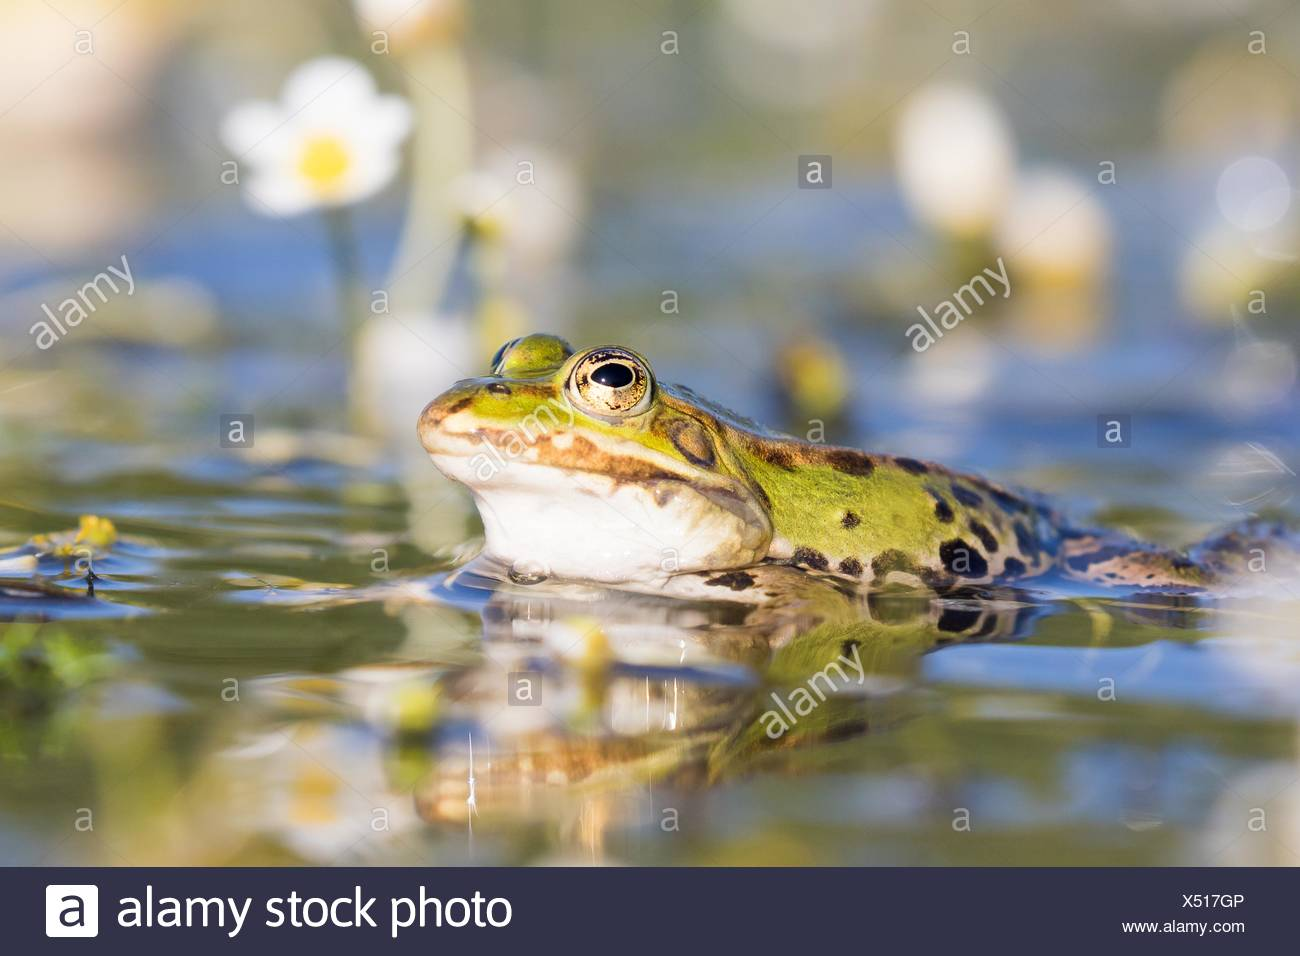 Edible frog (Pelophylax esculentus) in water, white water-crowfoot (Ranunculus aquatilis), Hesse, Germany - Stock Image